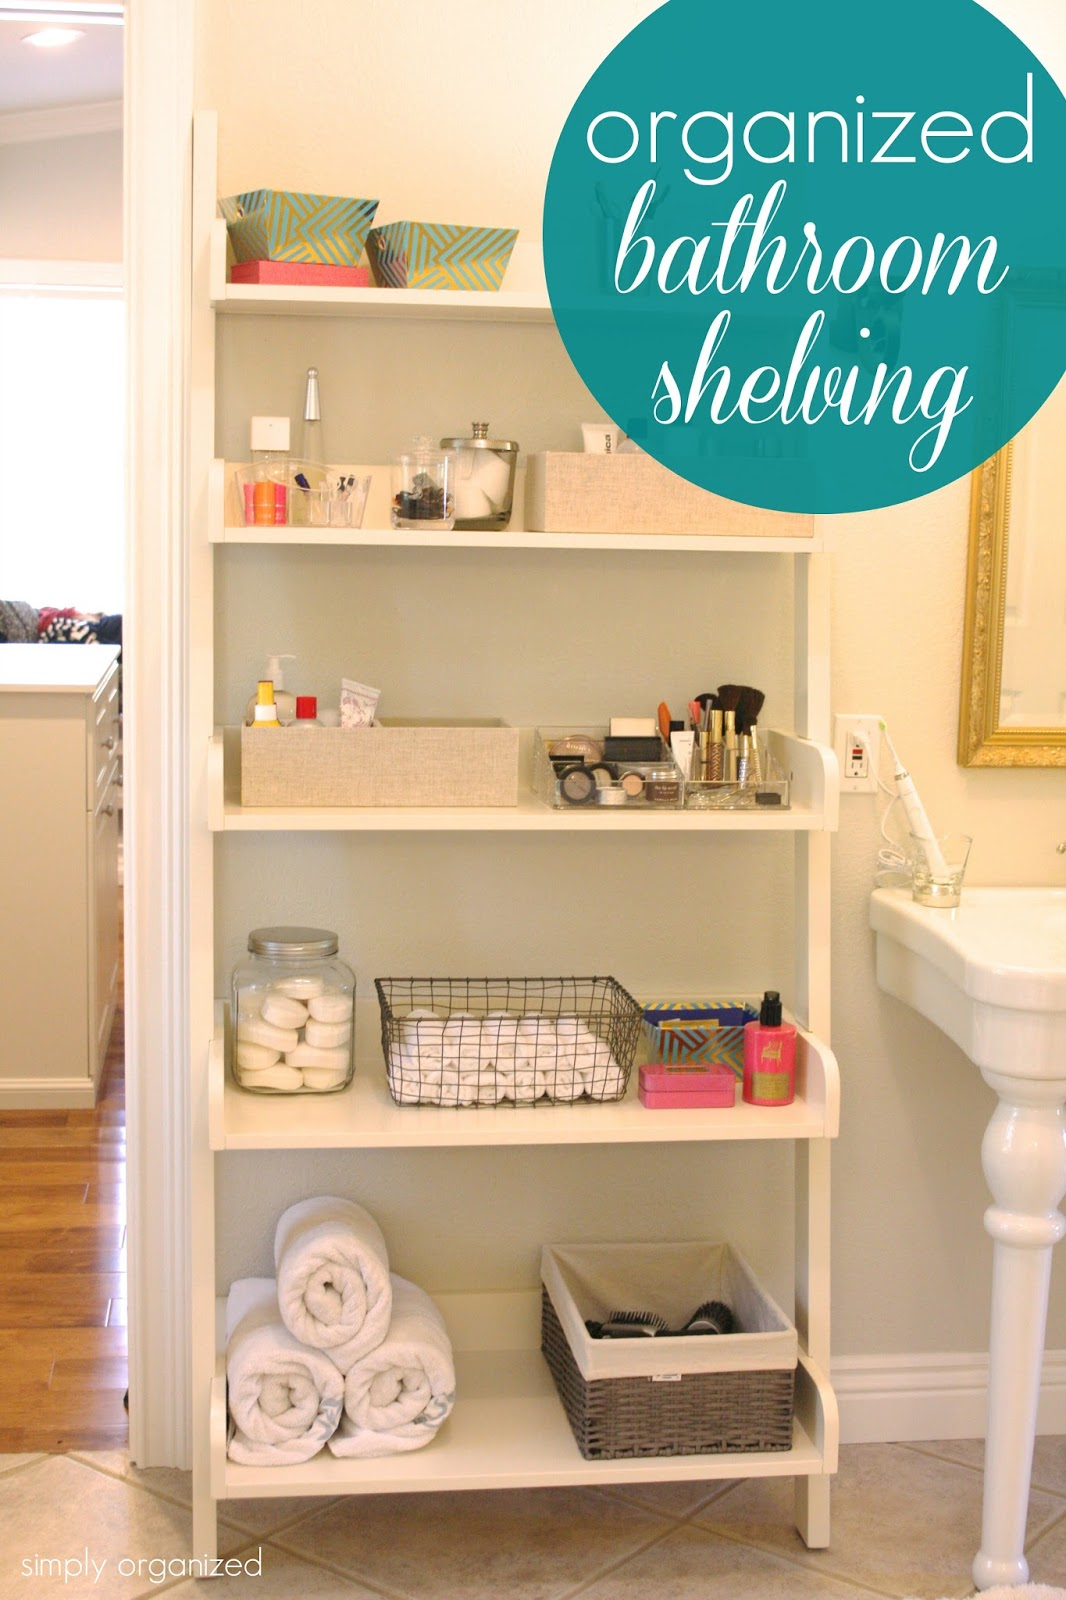 Organized bathroom shelving simply organized for Simply bathrooms